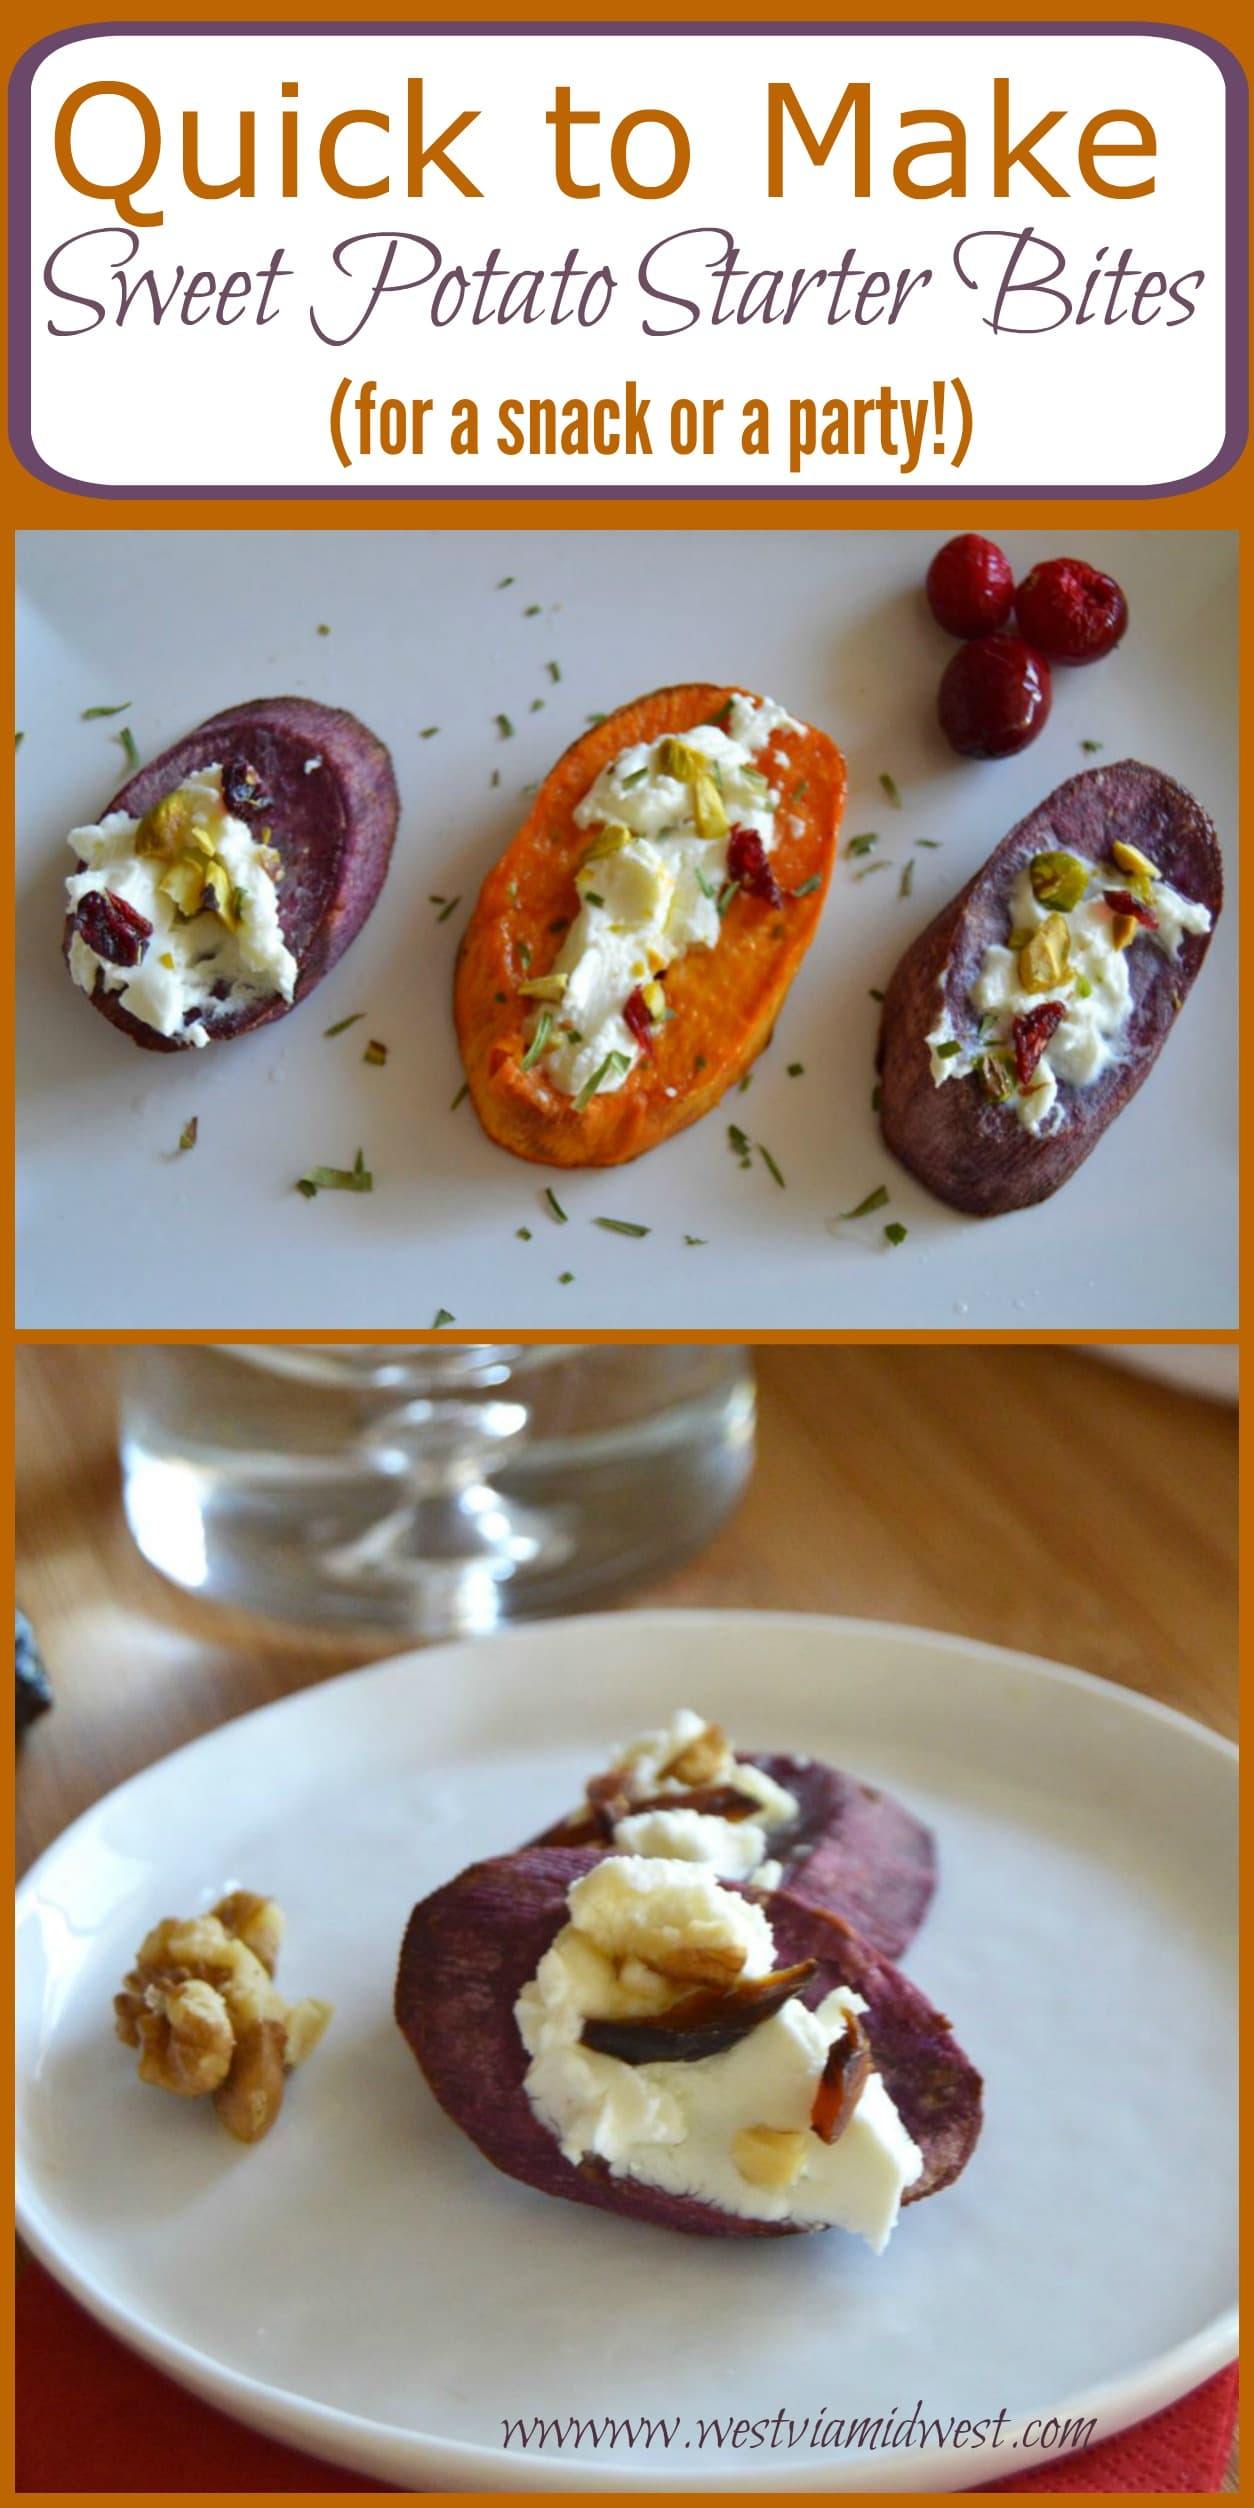 Need an appetizer that is truly the easiest thing ever and tastes like you put a lot of effort into it? These Sweet Potato Starter Bites fit the bill. They are easy to make, can be put together in about a half an hour (which includes 20 minutes of baking time) and are really versatile.